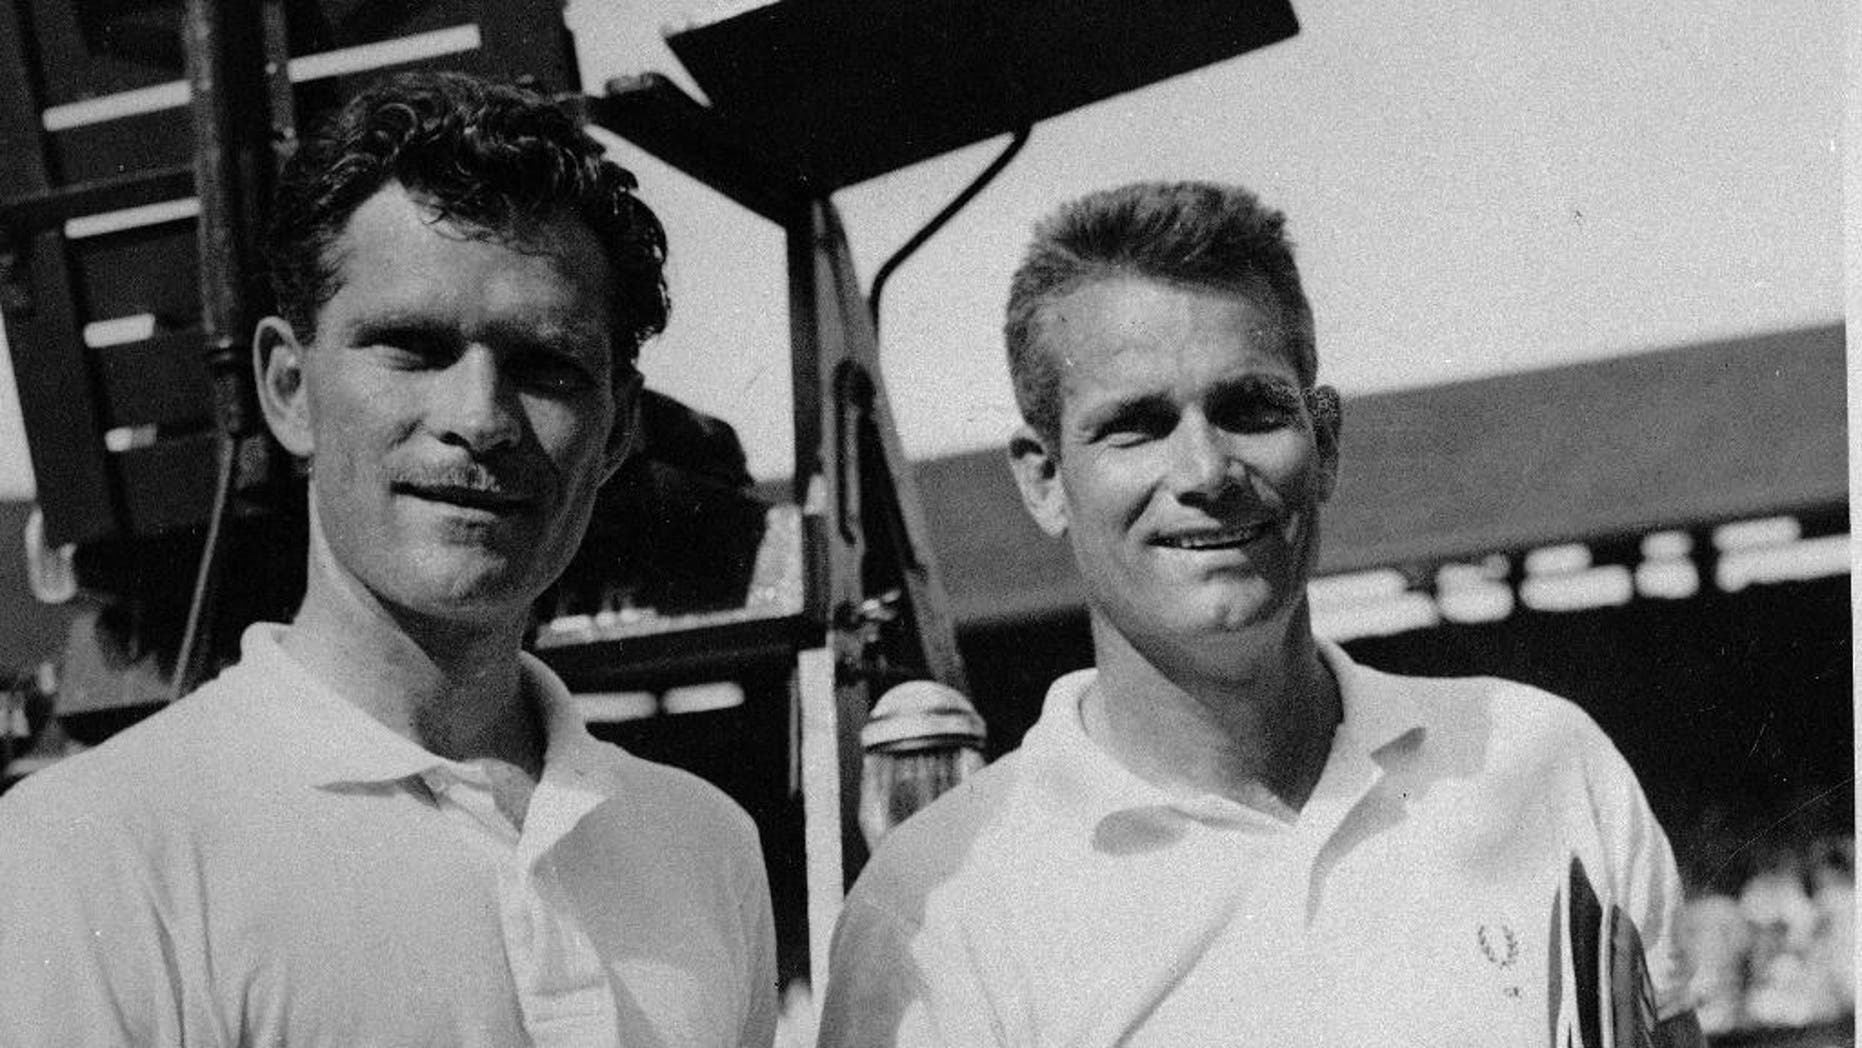 FILE - In this July, 6, 1957, file photo, winning doubles partners Budge Patty, left, and Gardnar Mulloy, both of the United States, hold their trophies after being presented by Queen Elizabeth at Wimbledon. Mulloy, a member of the International Tennis Hall of Fame who won 129 U.S. national titles, died Monday night, Nov. 14, 2016, in Miami. He was 102. (AP Photo/File)